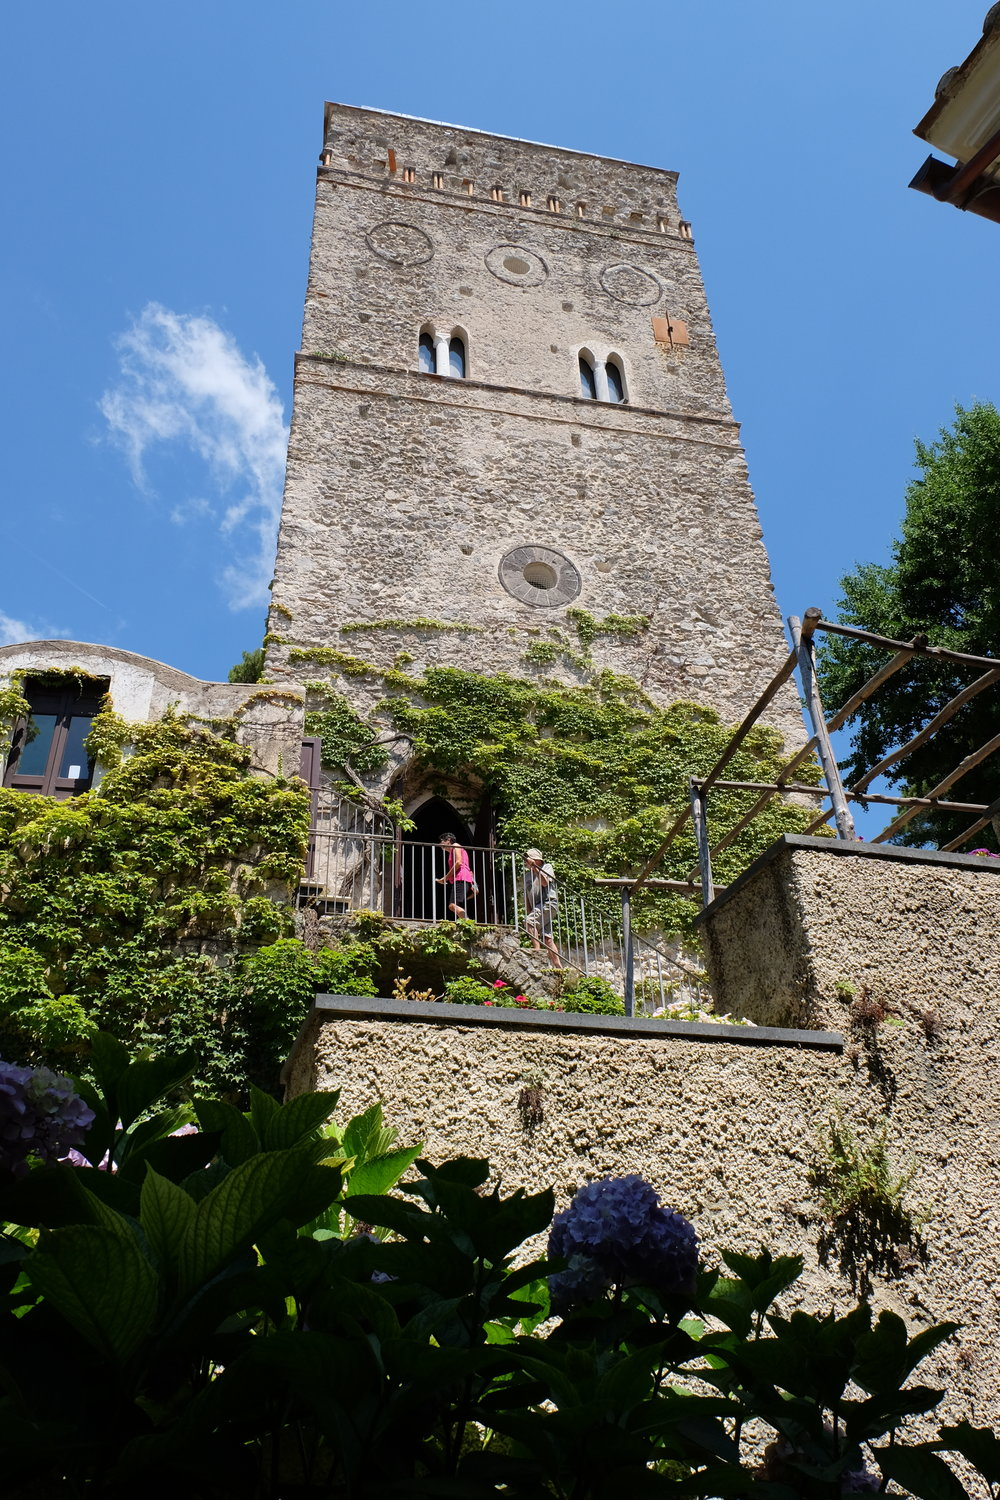 The tower of the villa.